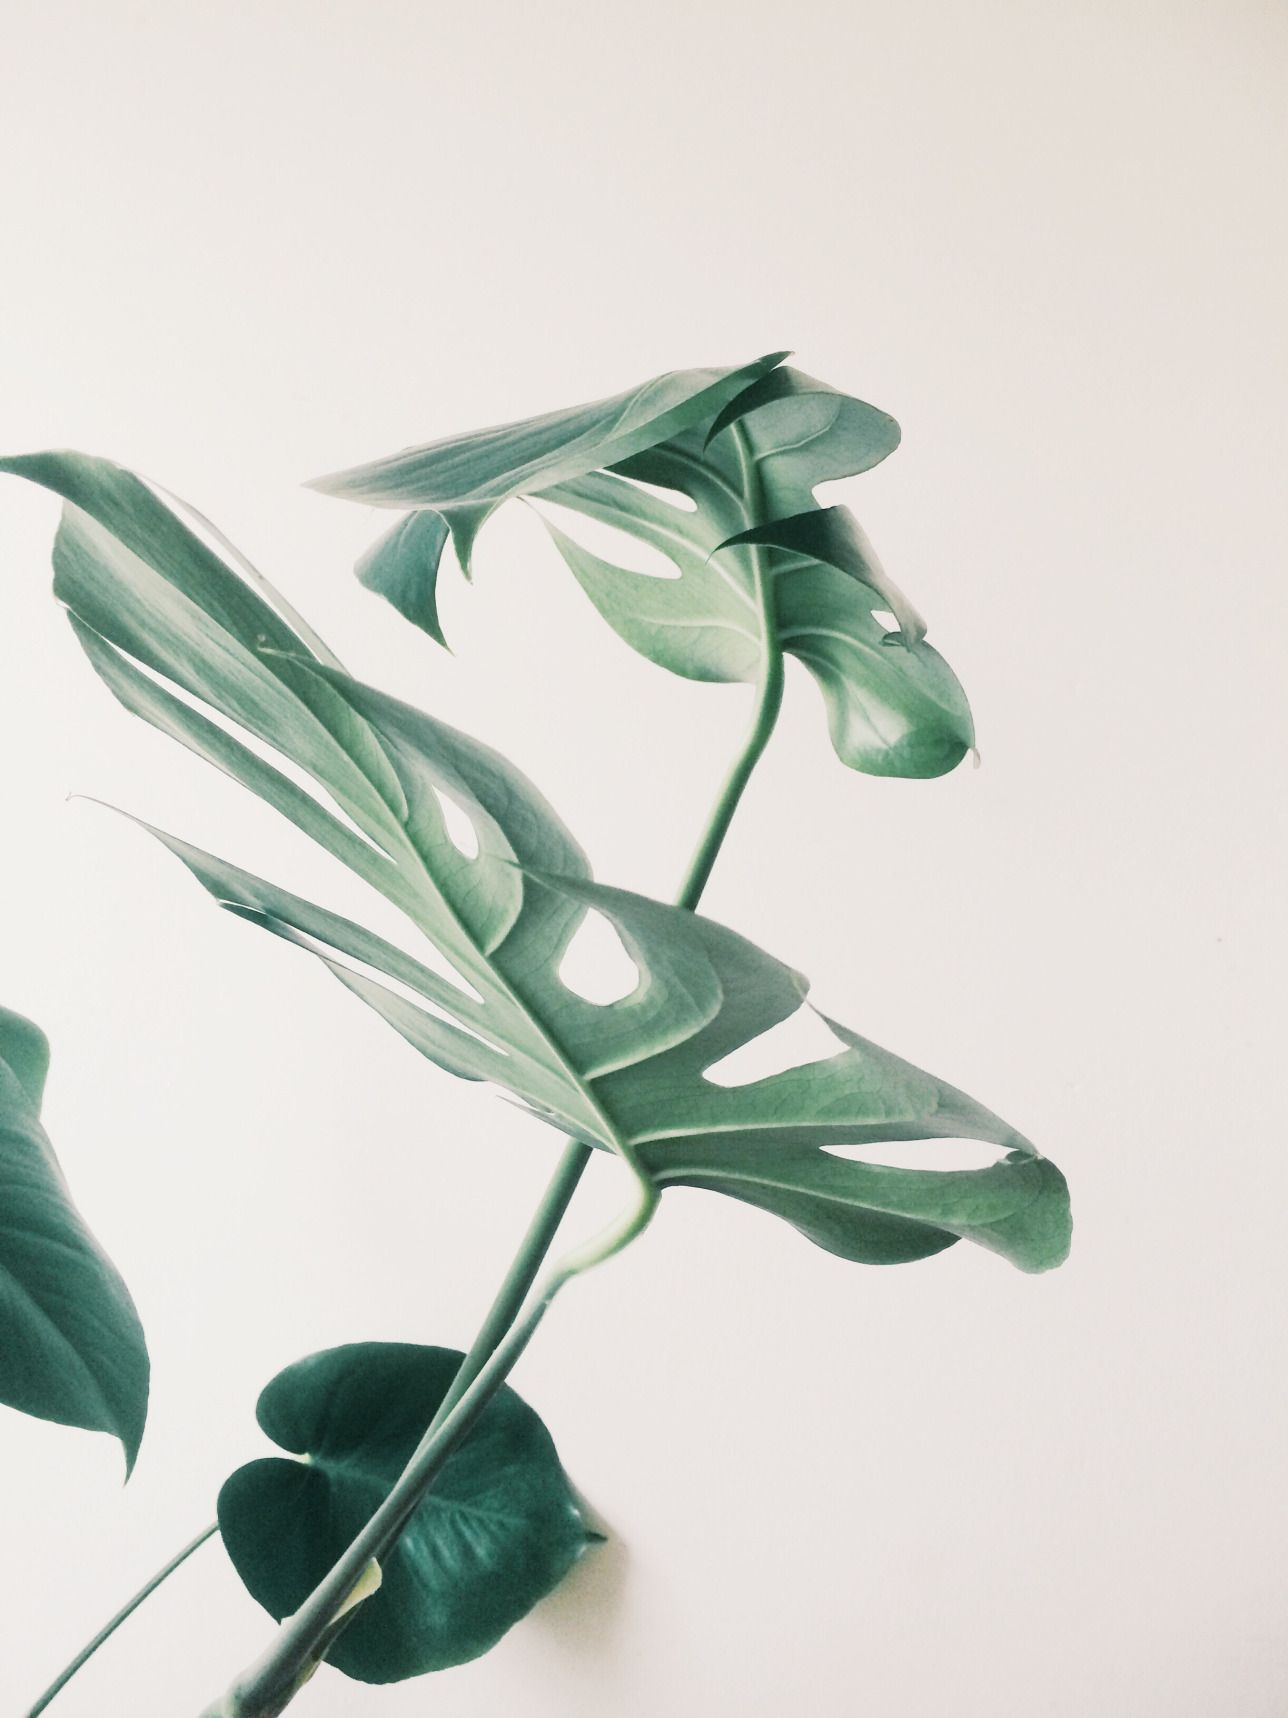 faux philodendron known as deliciosa monstera plantes d 39 int rieur pinterest vegetal. Black Bedroom Furniture Sets. Home Design Ideas